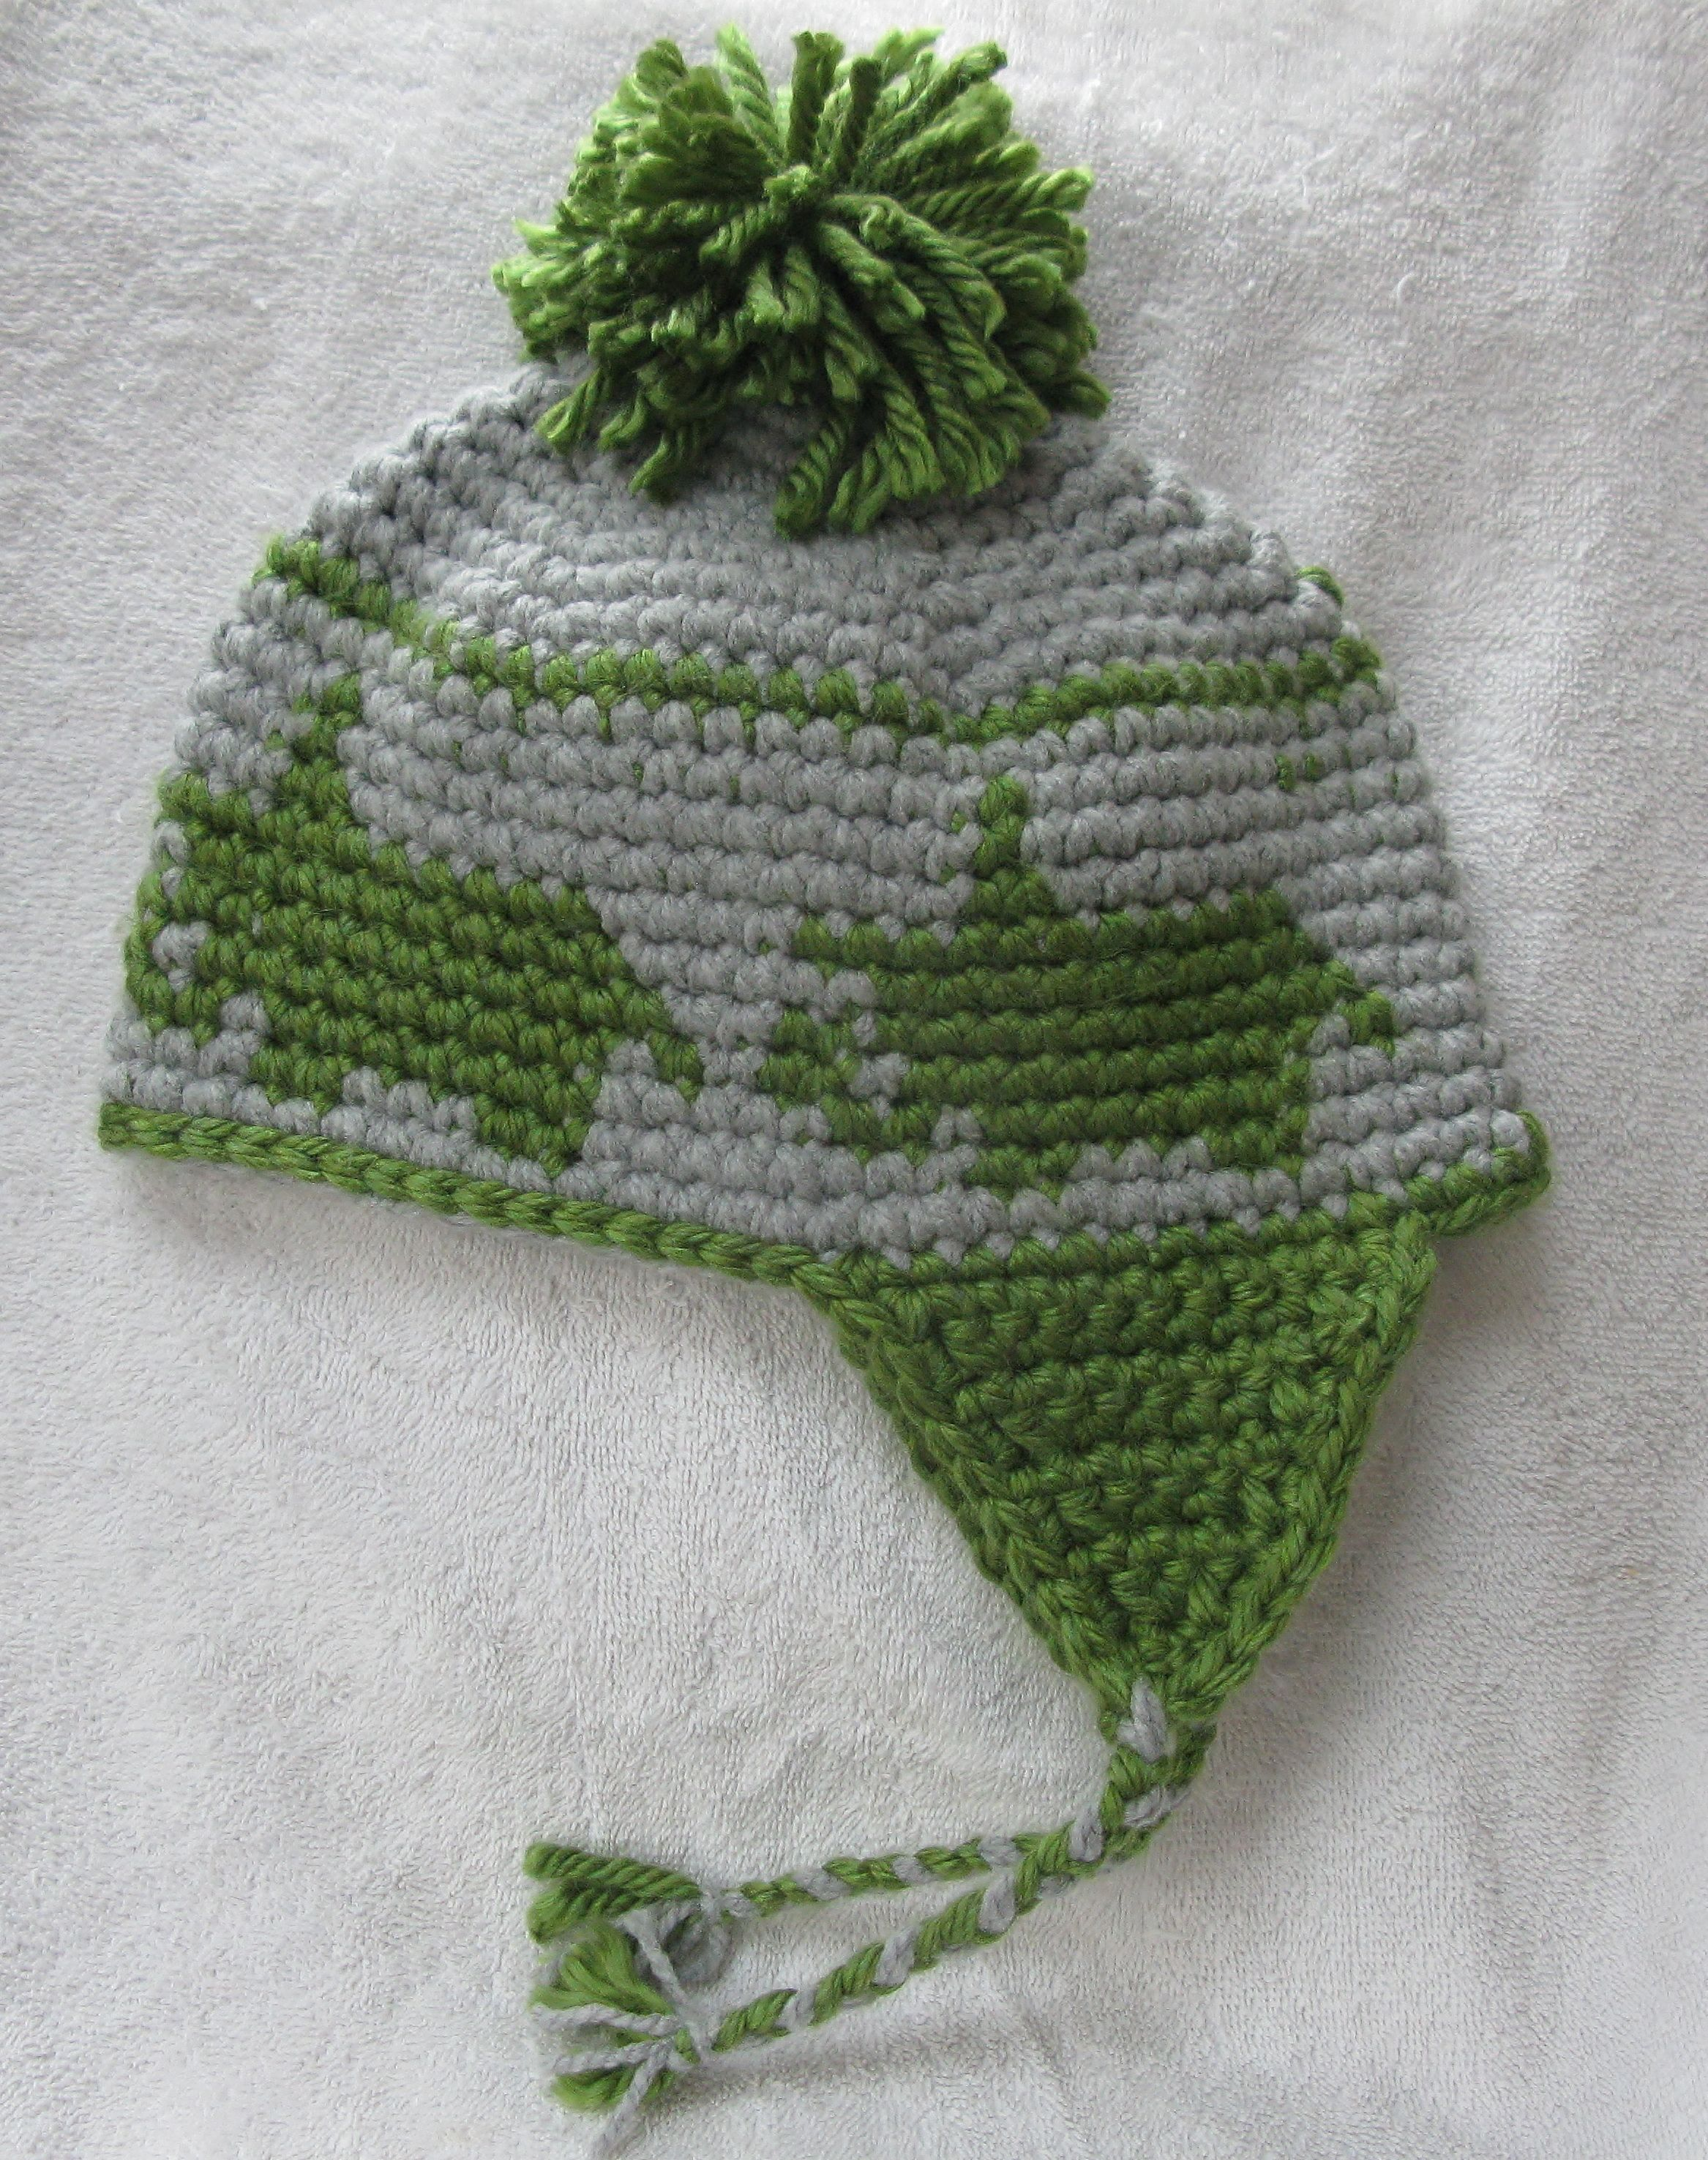 Tapestry Crochet Hat with pattern of Dinosaur Triceratops | Tapestry ...